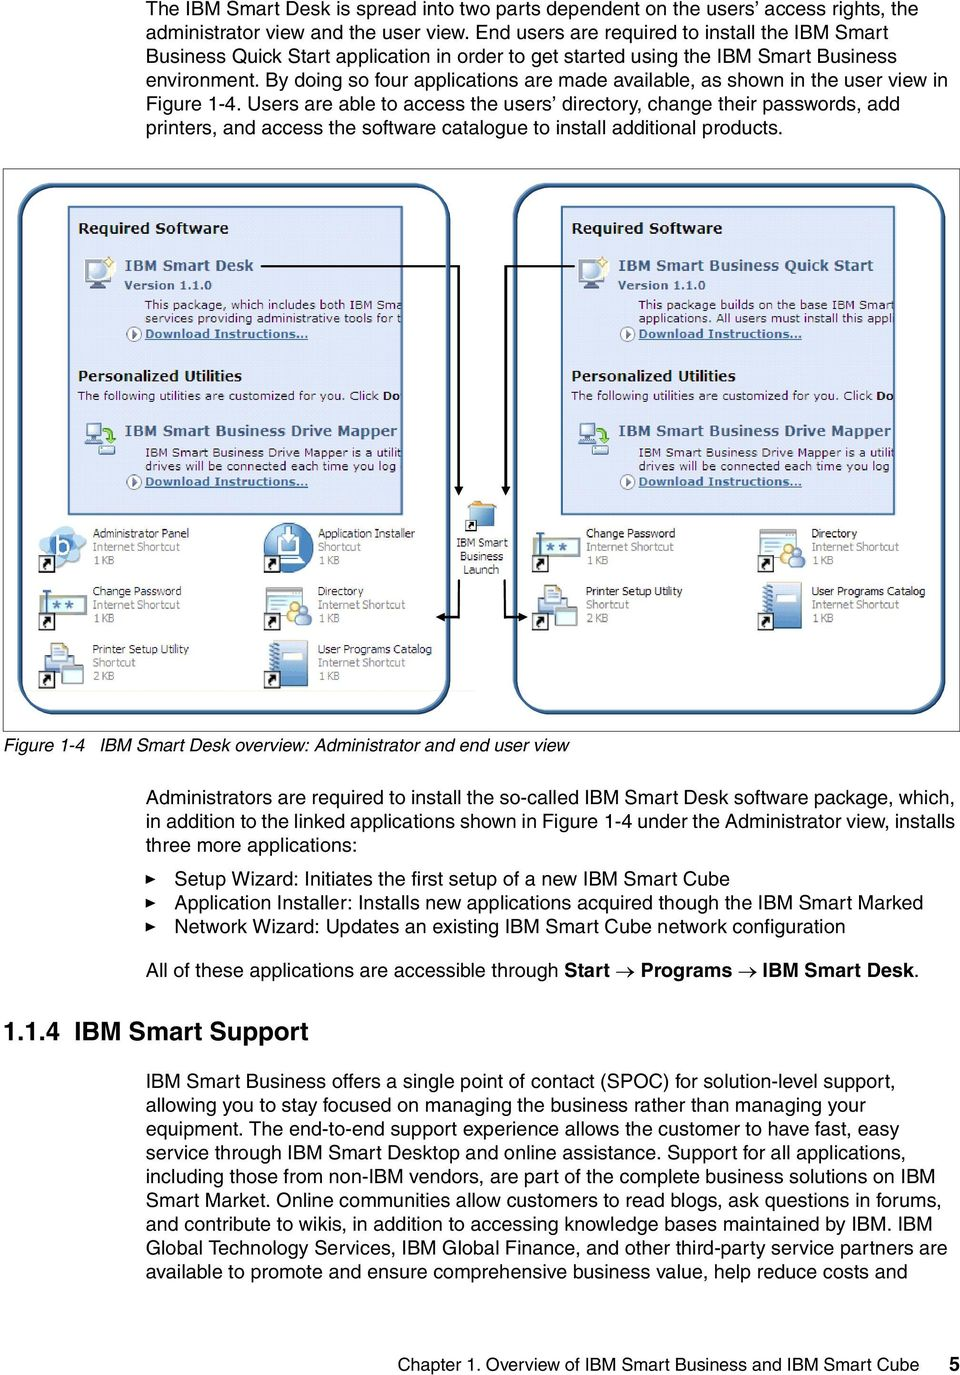 By doing so four applications are made available, as shown in the user view in Figure 1-4.